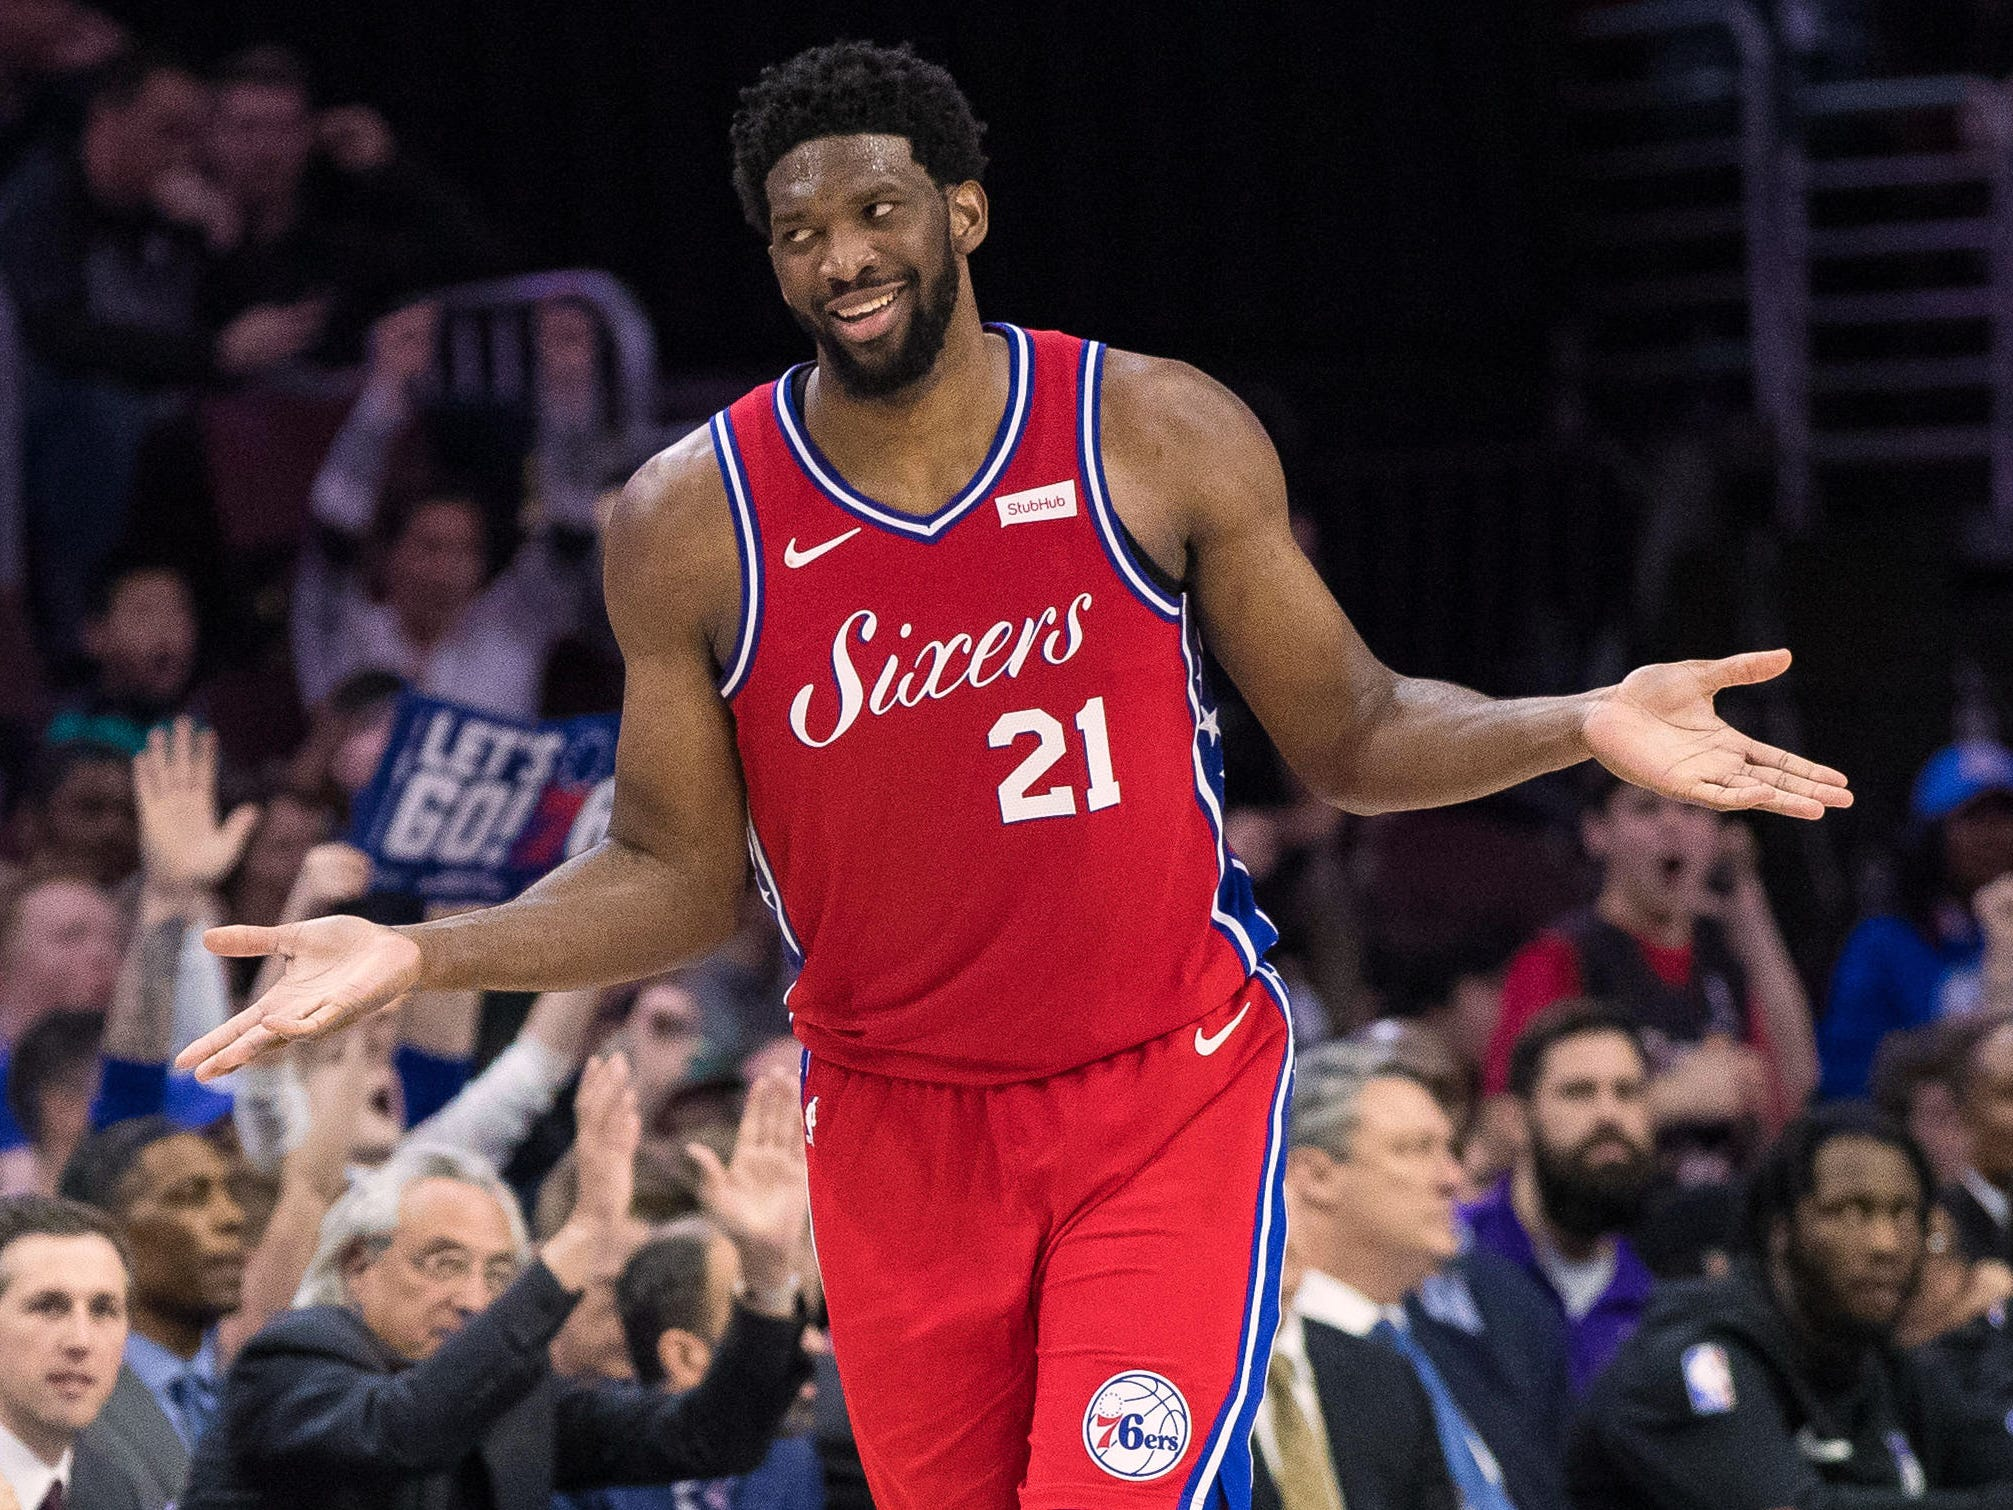 March 15: Sixers center Joel Embiid has a shrug and a smile for the fans after hitting a 3-pointer during a win over the Kings in Philadelphia.